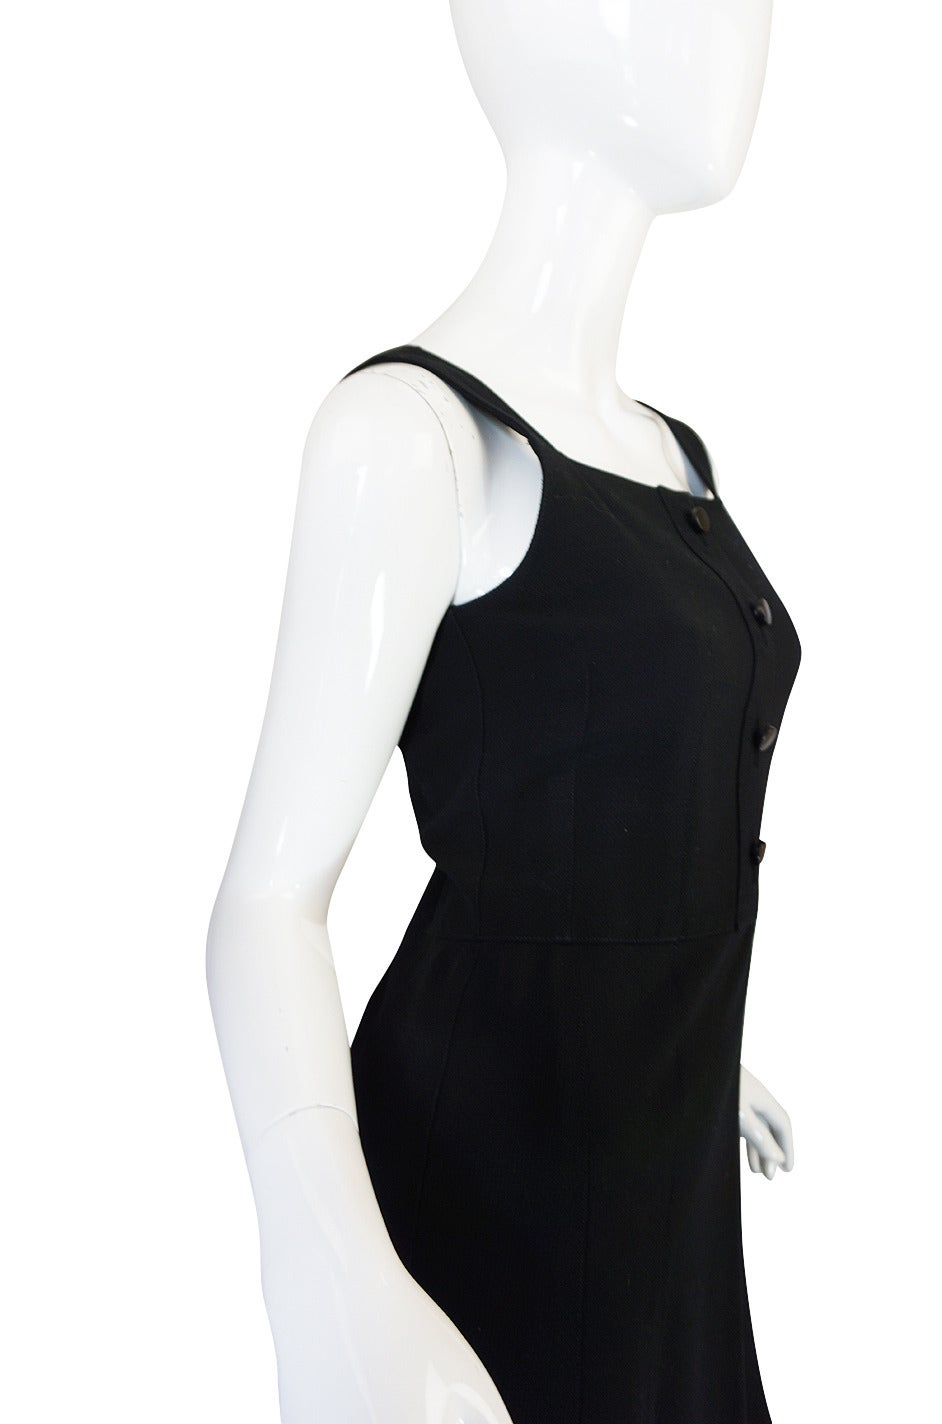 1960s Courreges HyperBole Twirling Skirt Sleeveless Dress In Excellent Condition For Sale In Toronto, ON